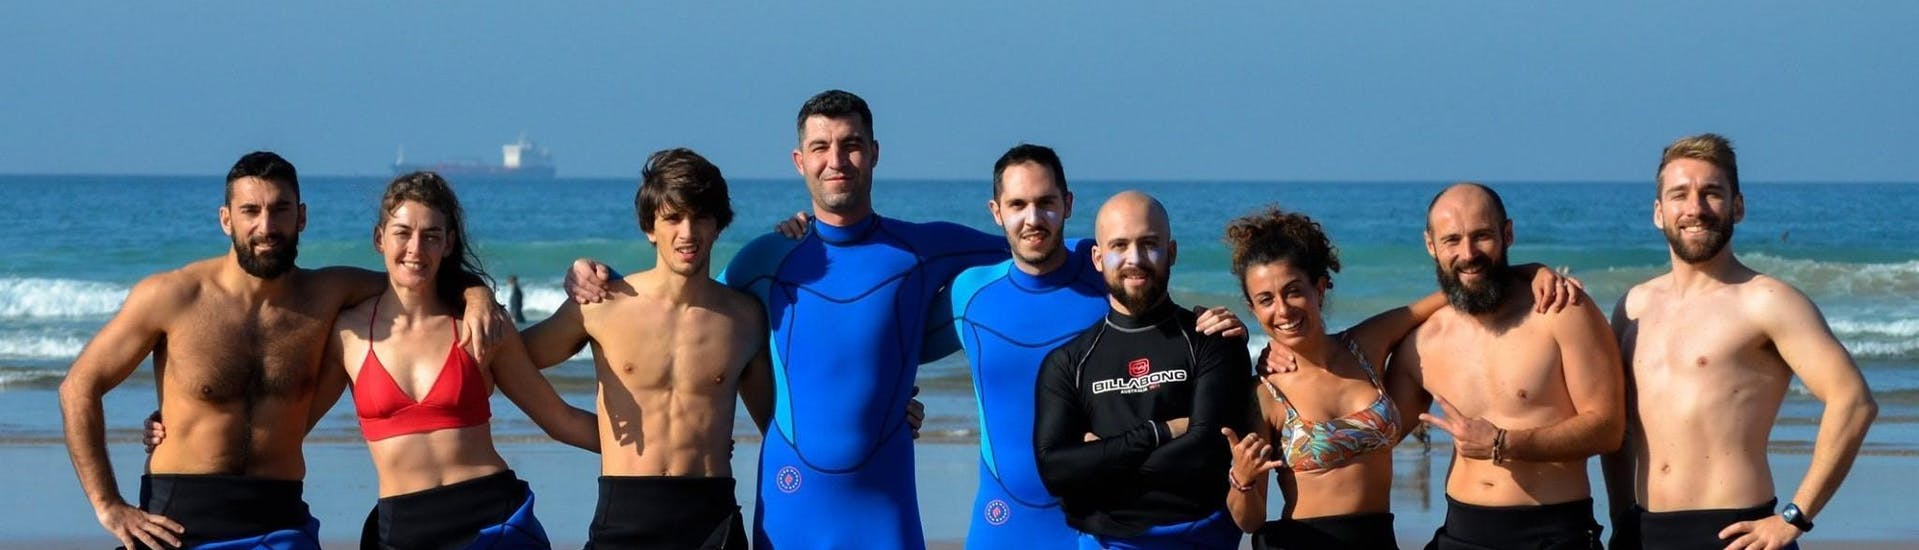 A group of surfers stands on the beach together with their surf instructors from Latas Surf and smile into the camera.